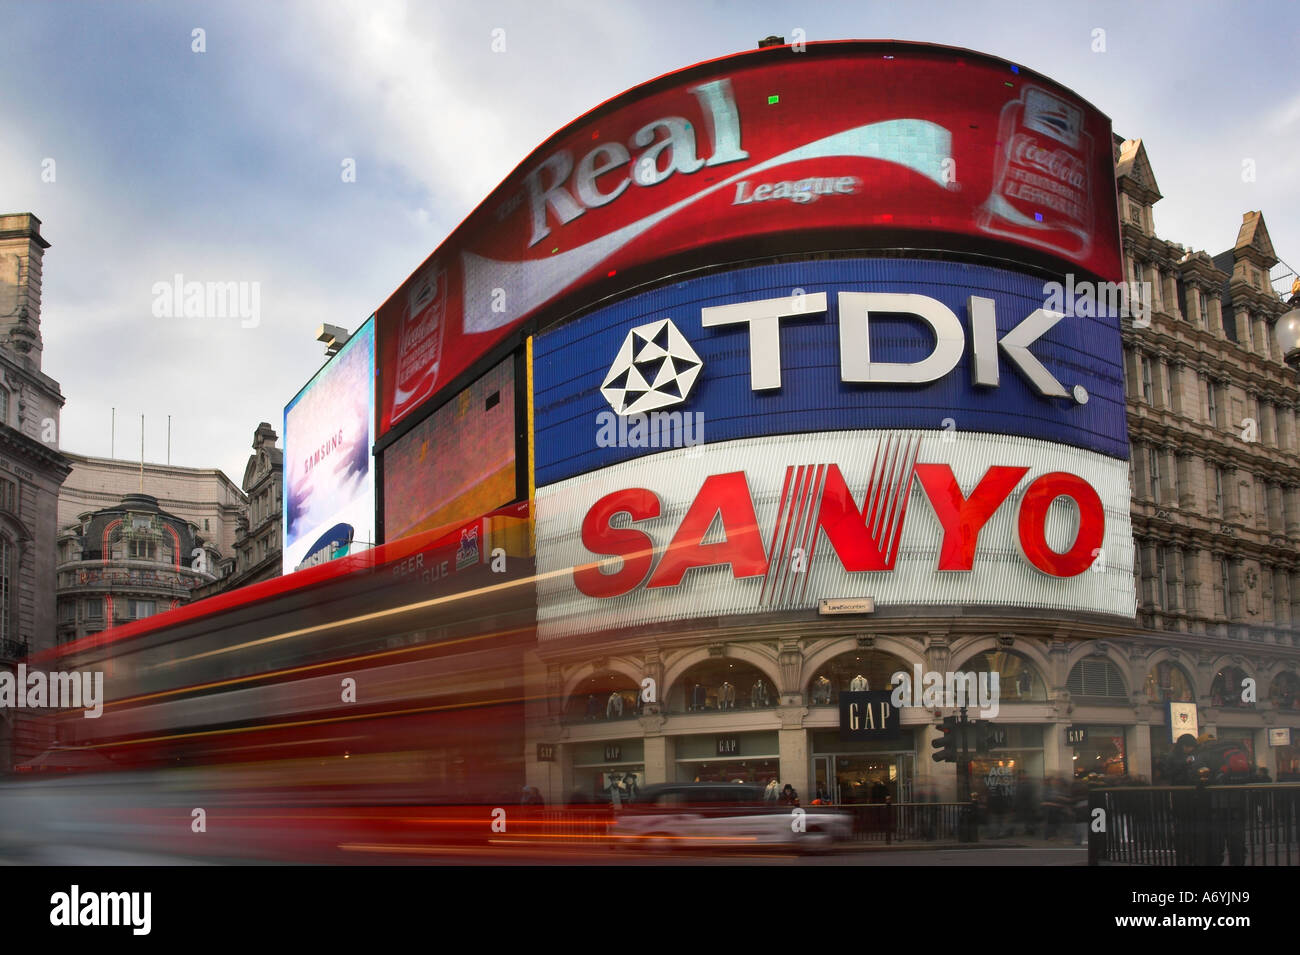 Picadilly Circus, London with bright billboards and red double decker bus blurred in foreground. - Stock Image